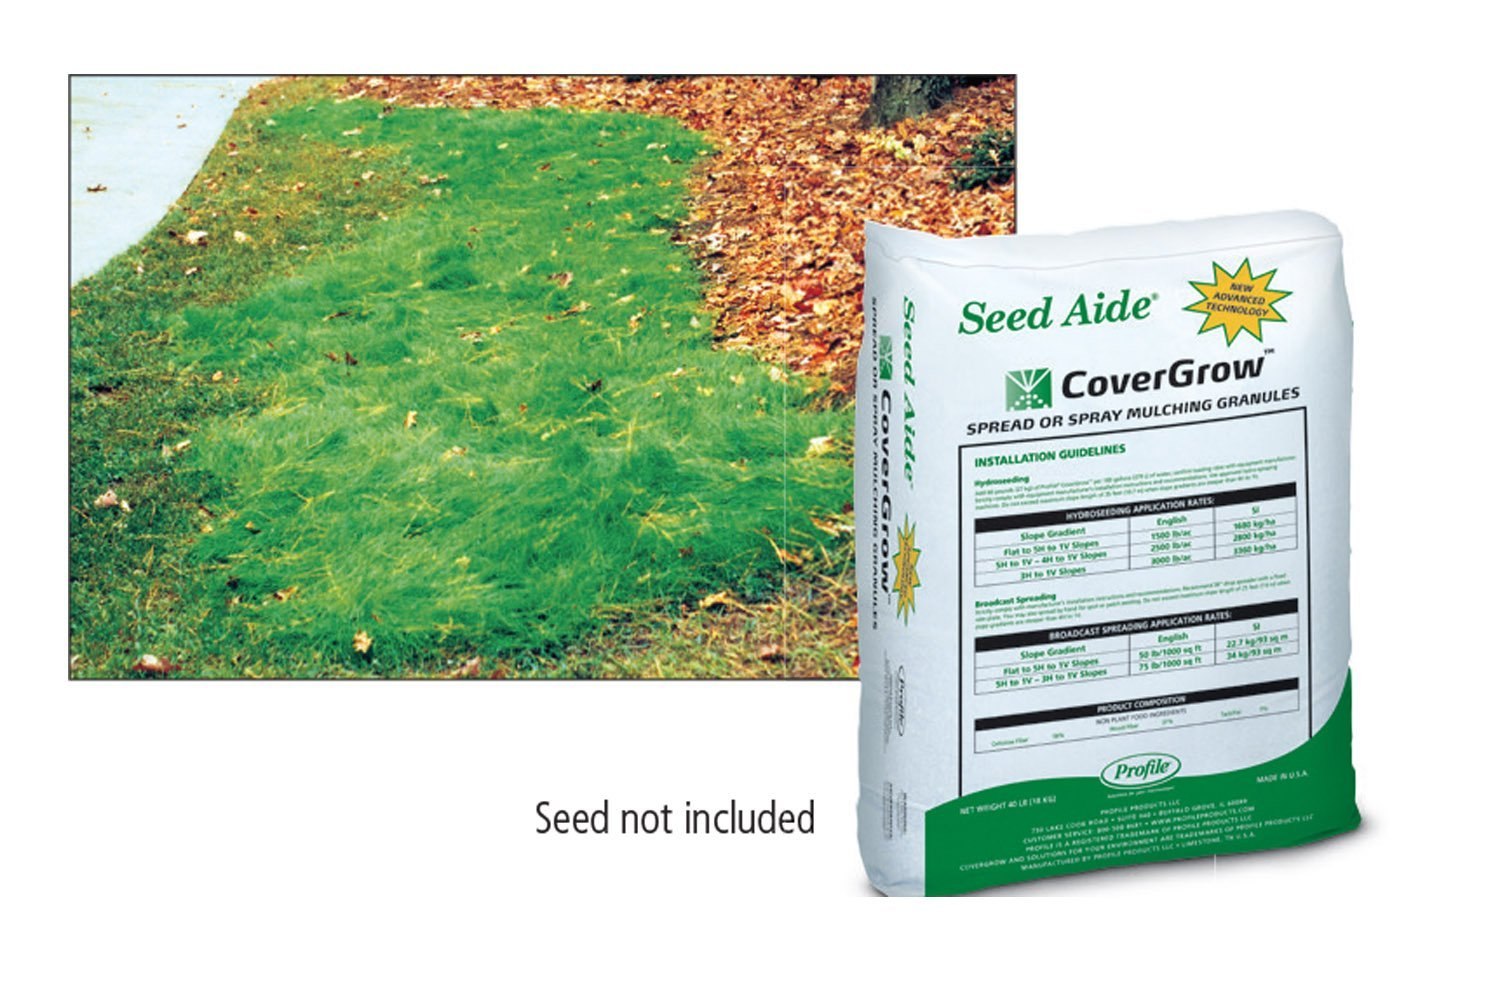 Seed Aide - Cover Grow, Water Retaining Seed Starting Mulch (40 LBS) by Nature's Seed